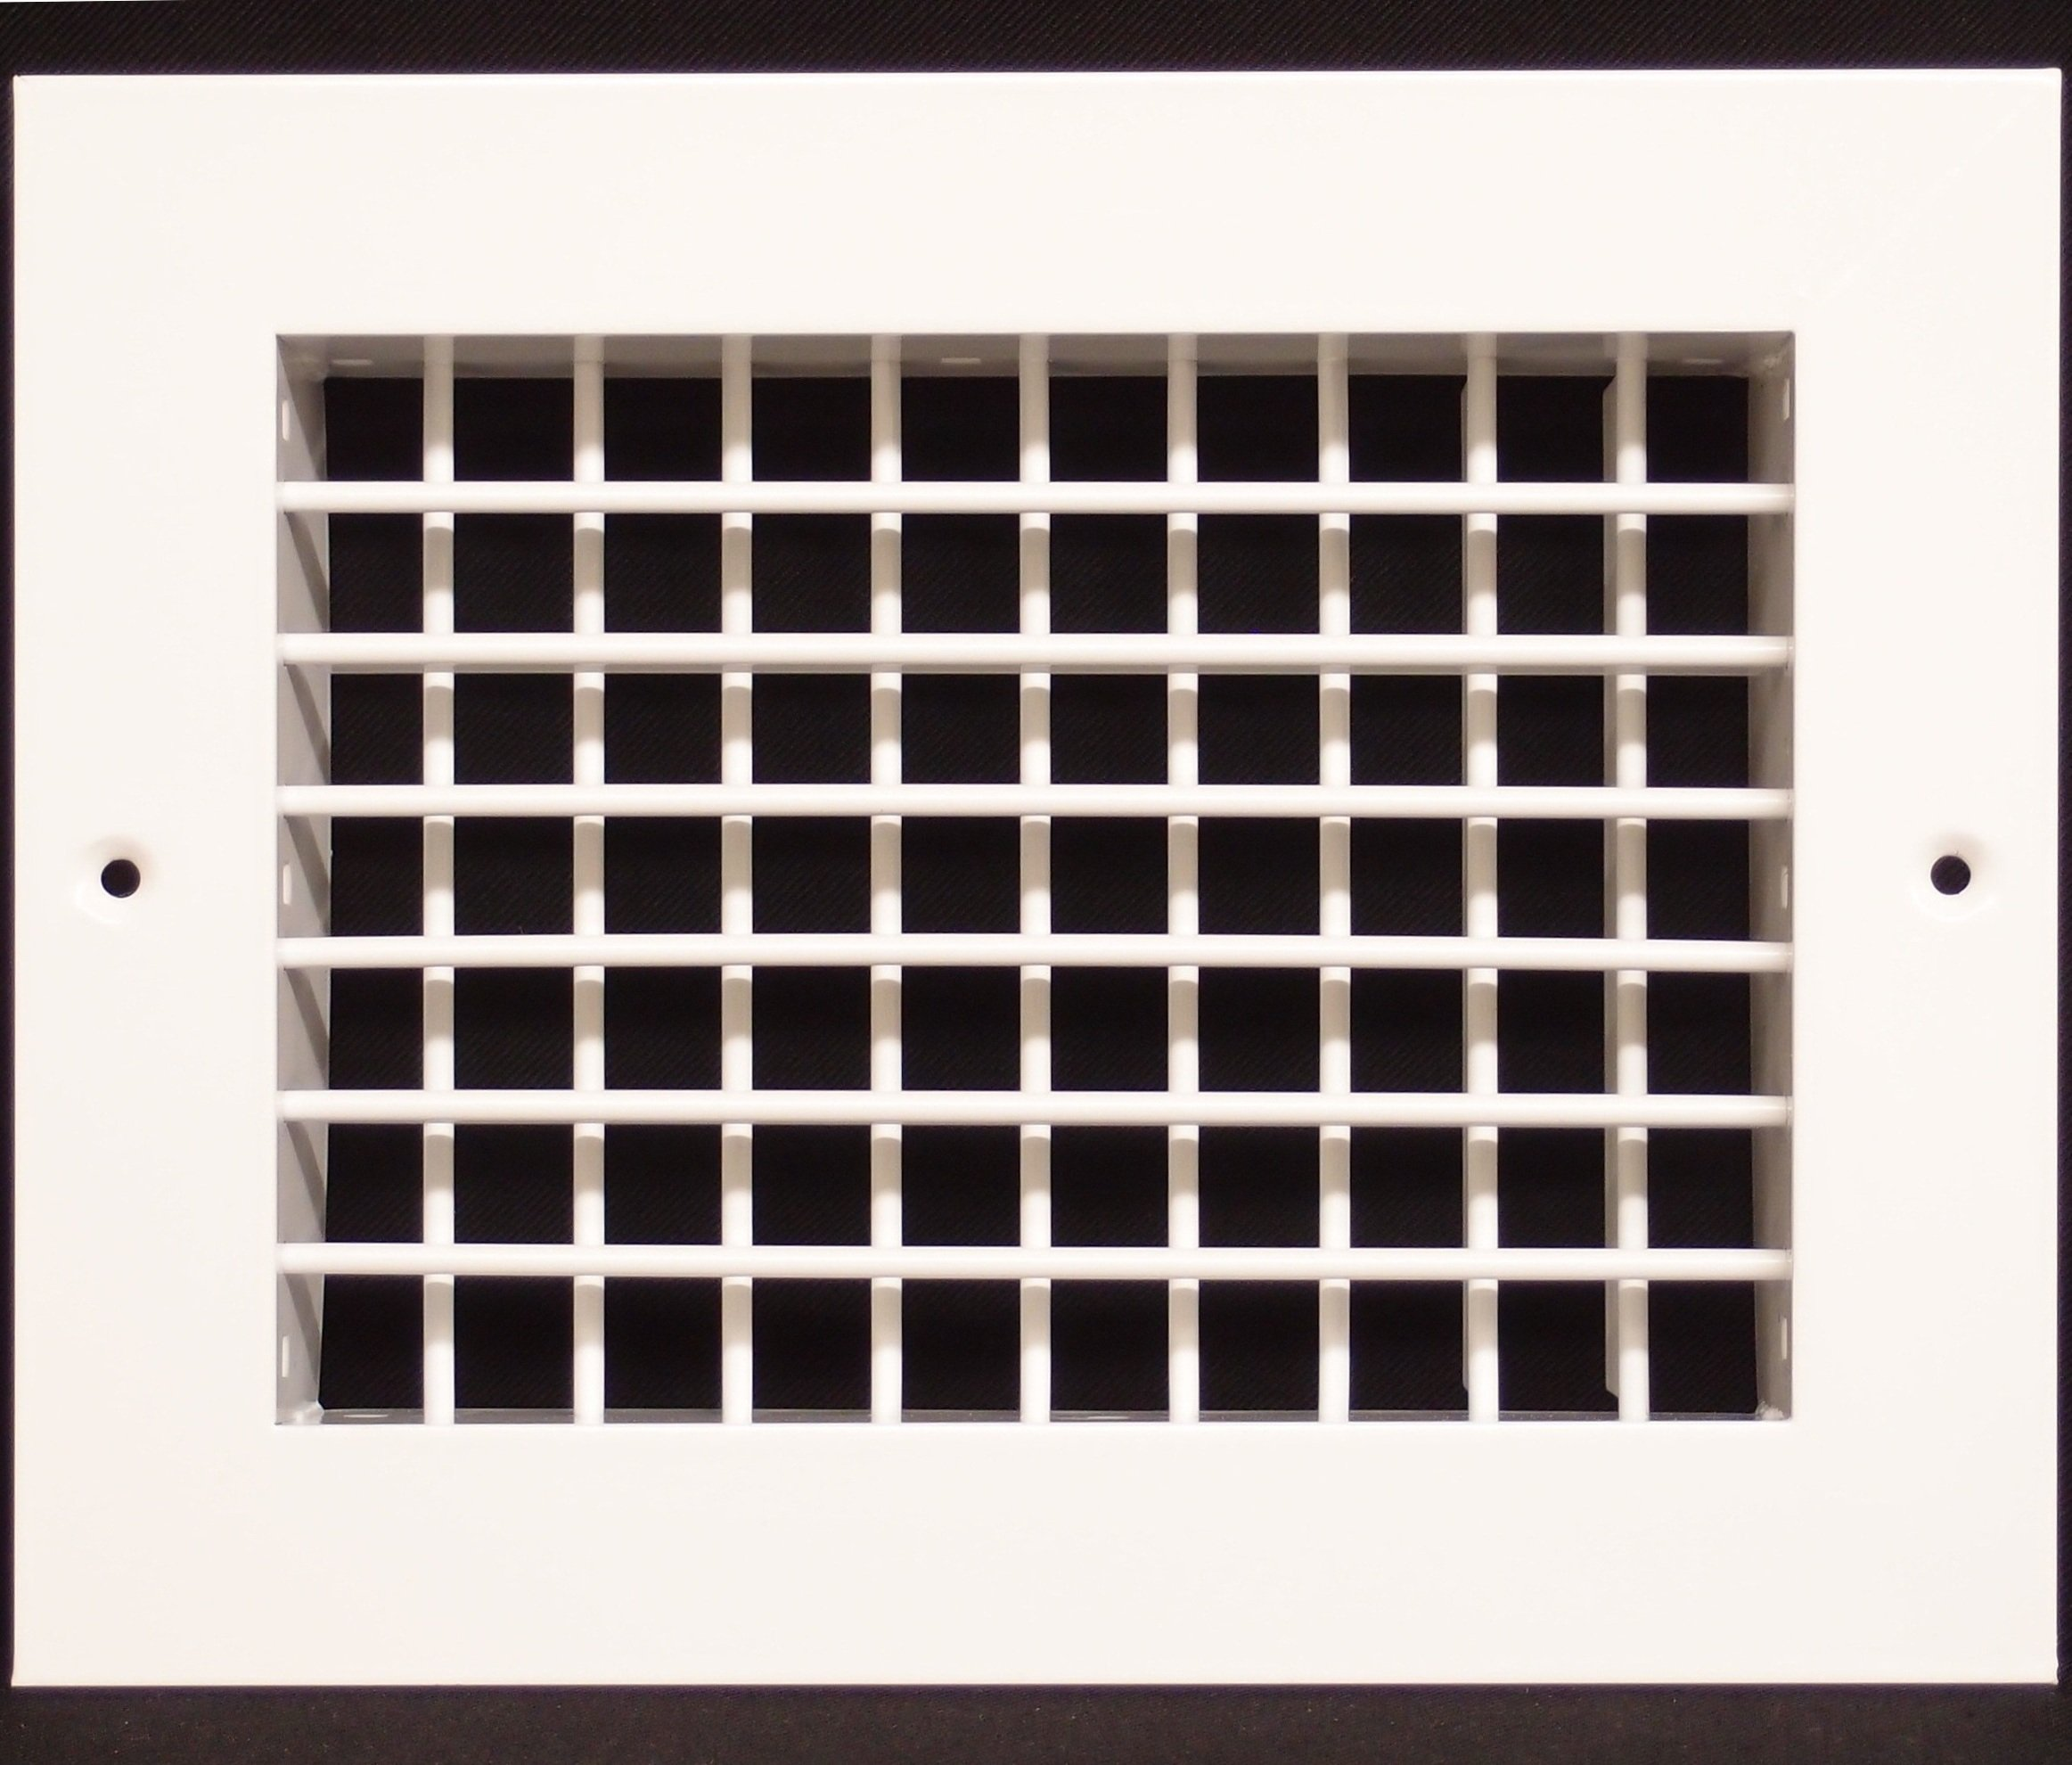 8''w X 6''h Aluminum Double Deflection Adjustale Air Supply HVAC Diffuser - Full Control Vertical/Horizontal Airflow Direction - Wide Front End Overlap - Vent Duct Cover